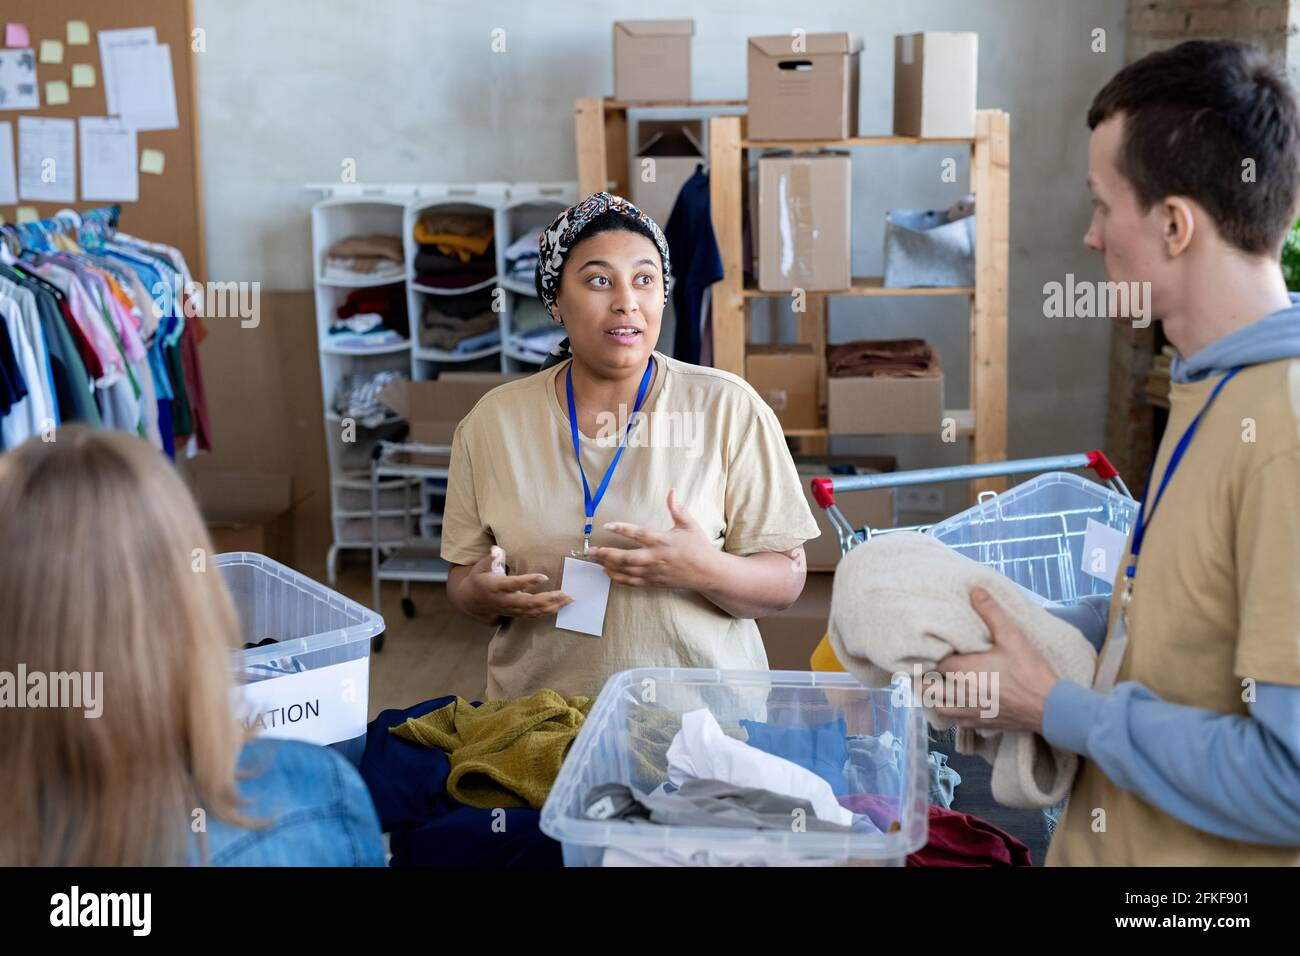 A group of volunteers talking and choosing donation clothes Stock Photo